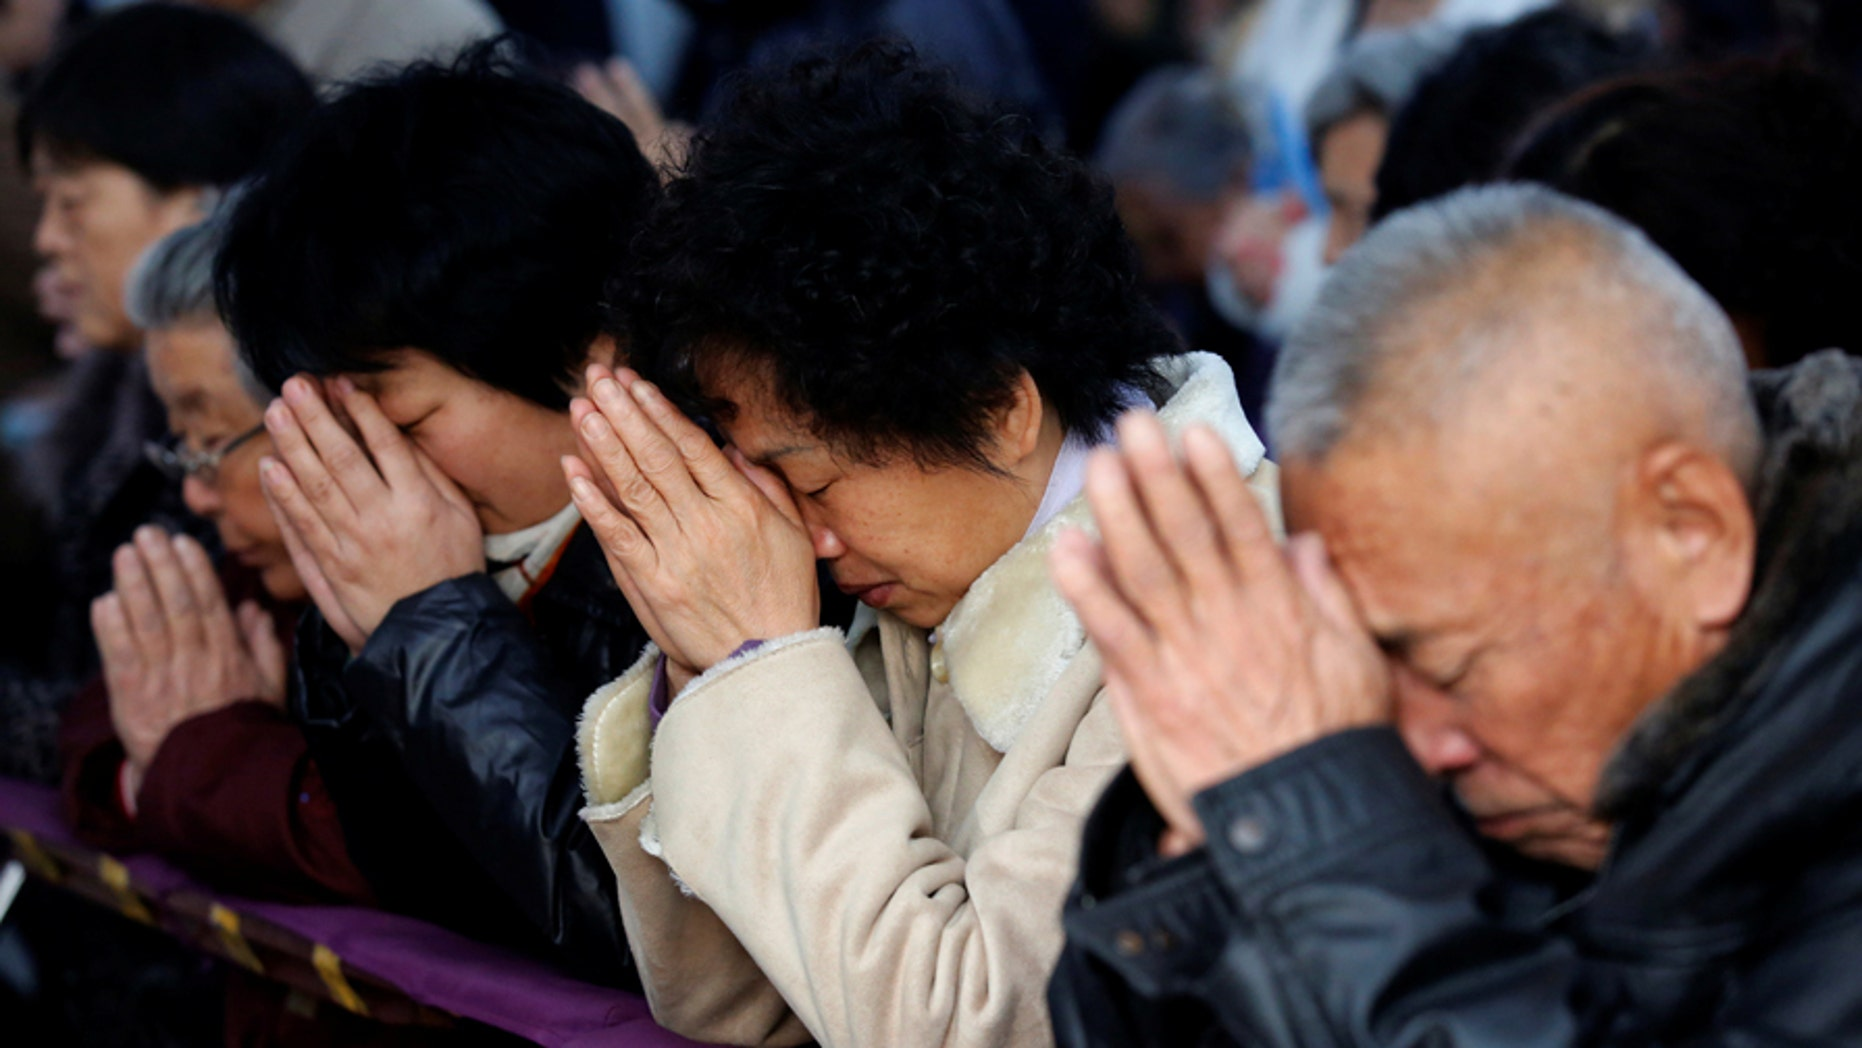 Believers take part in a weekend mass at an underground Catholic church in Tianjin November 10, 2013.